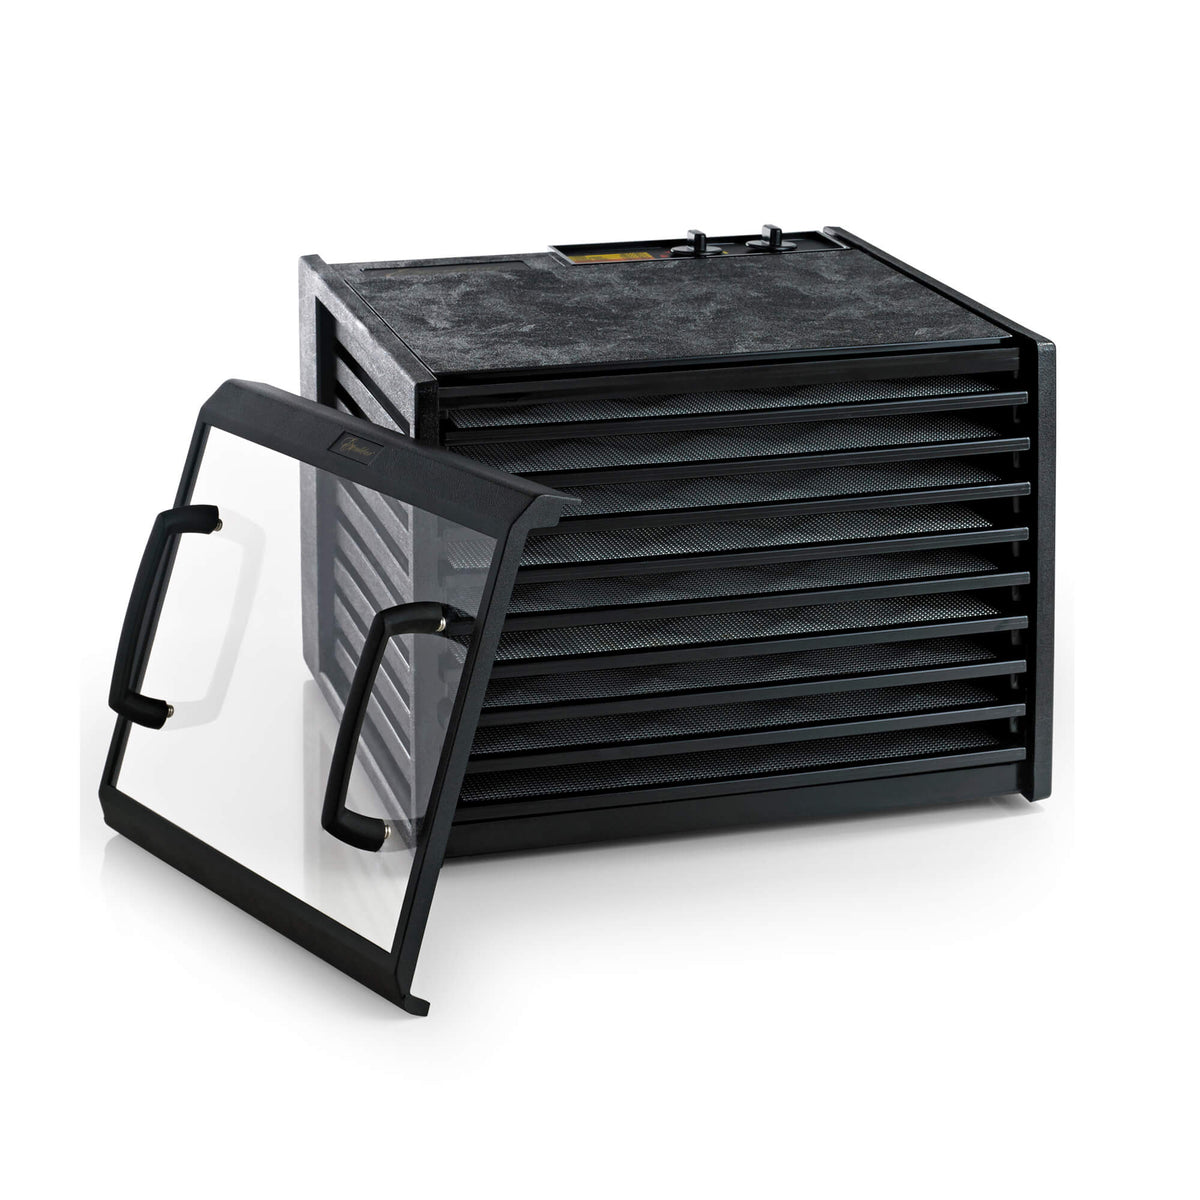 Excalibur 4926TCDB 9 tray dehydrator with clear door propped to the side and trays in.